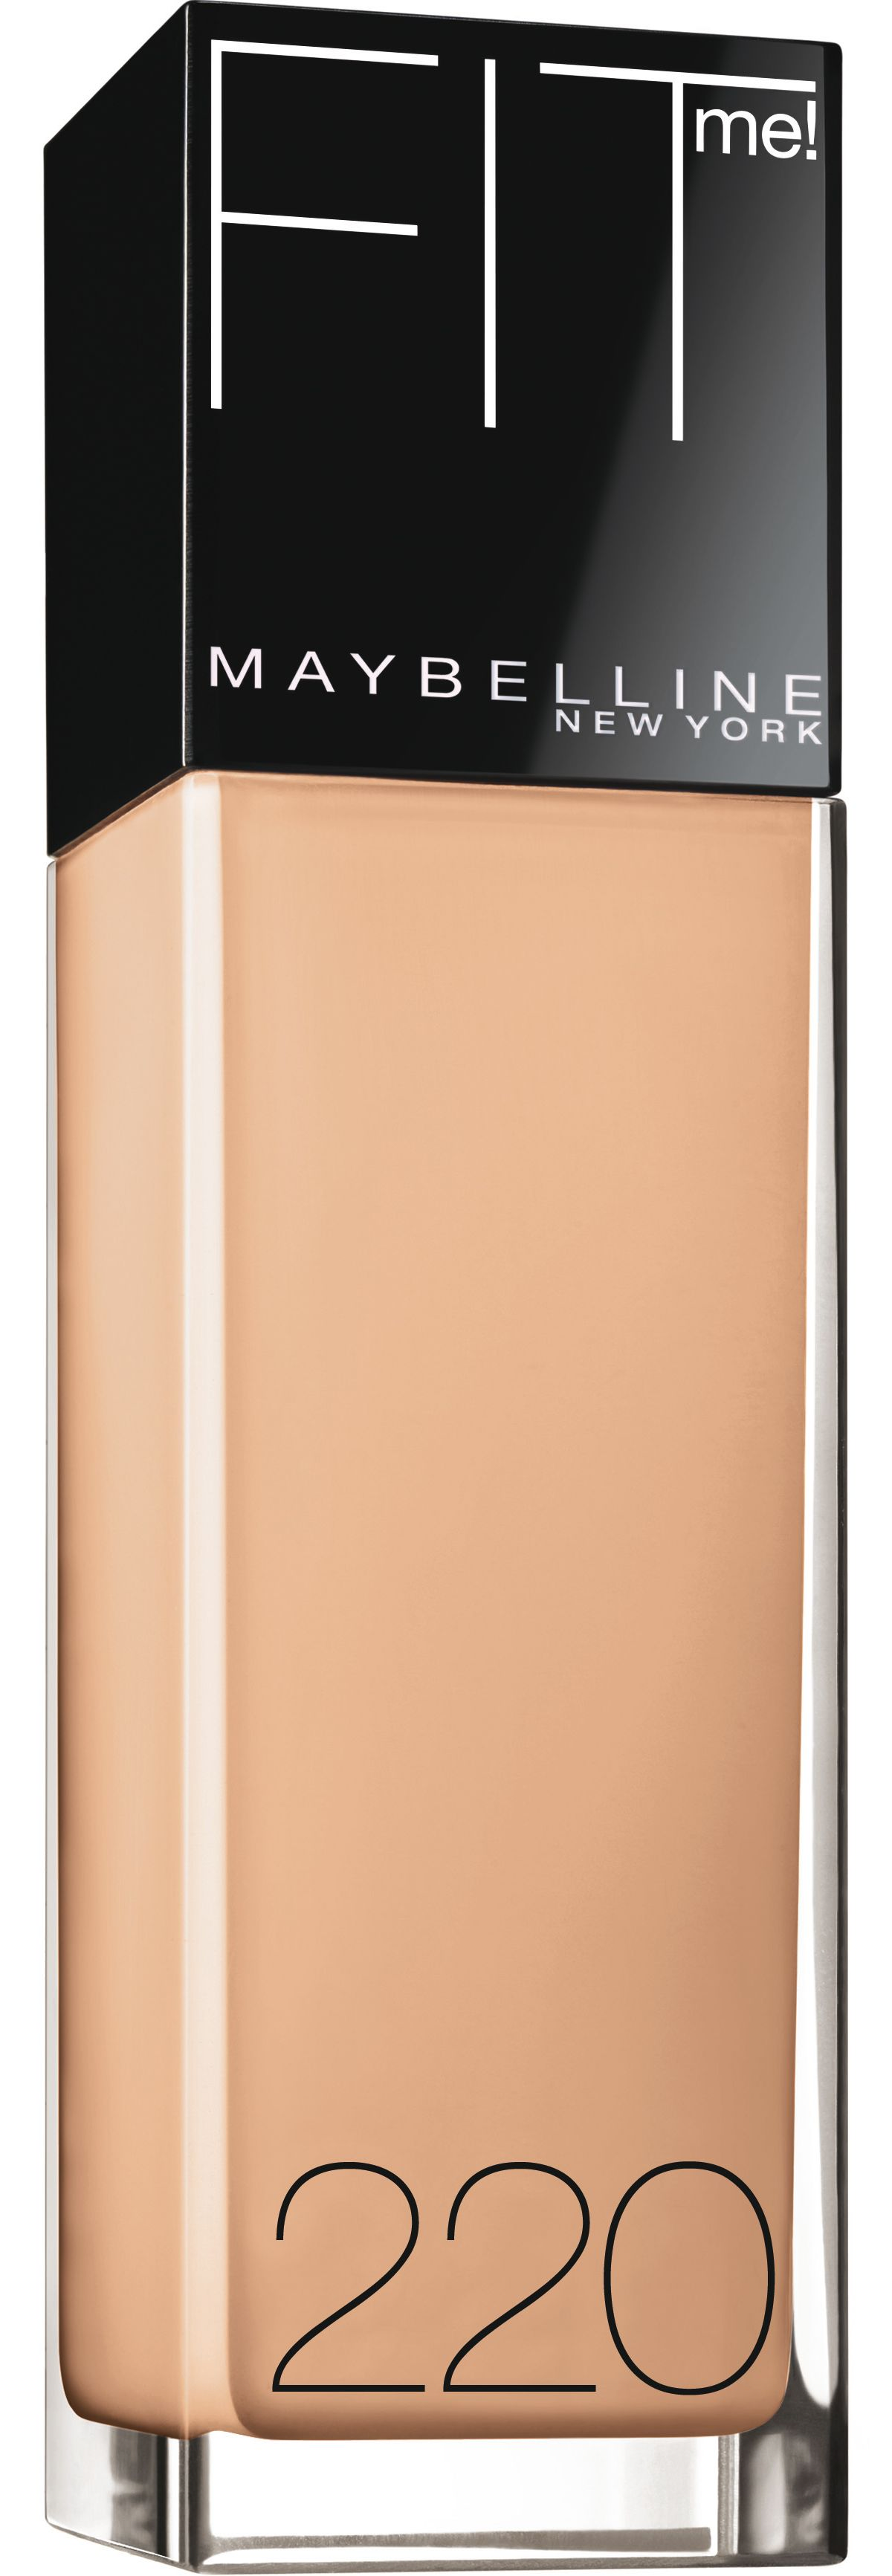 Maybelline New York, »Fit me! Make-up«, Foundation